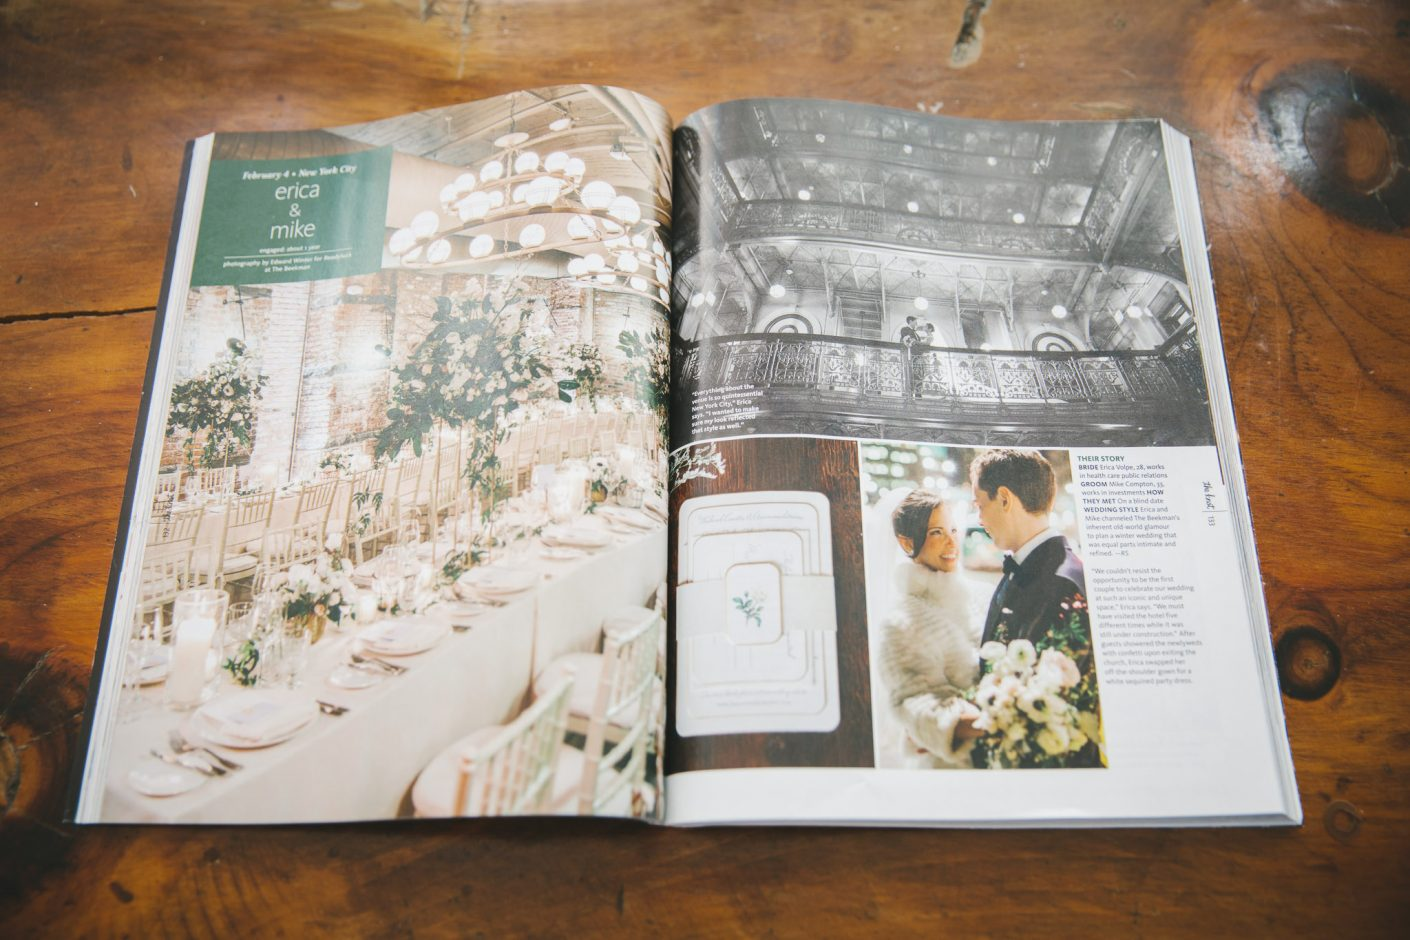 Edward Winter, The Knot Magazine Feature The Beekman Hotel